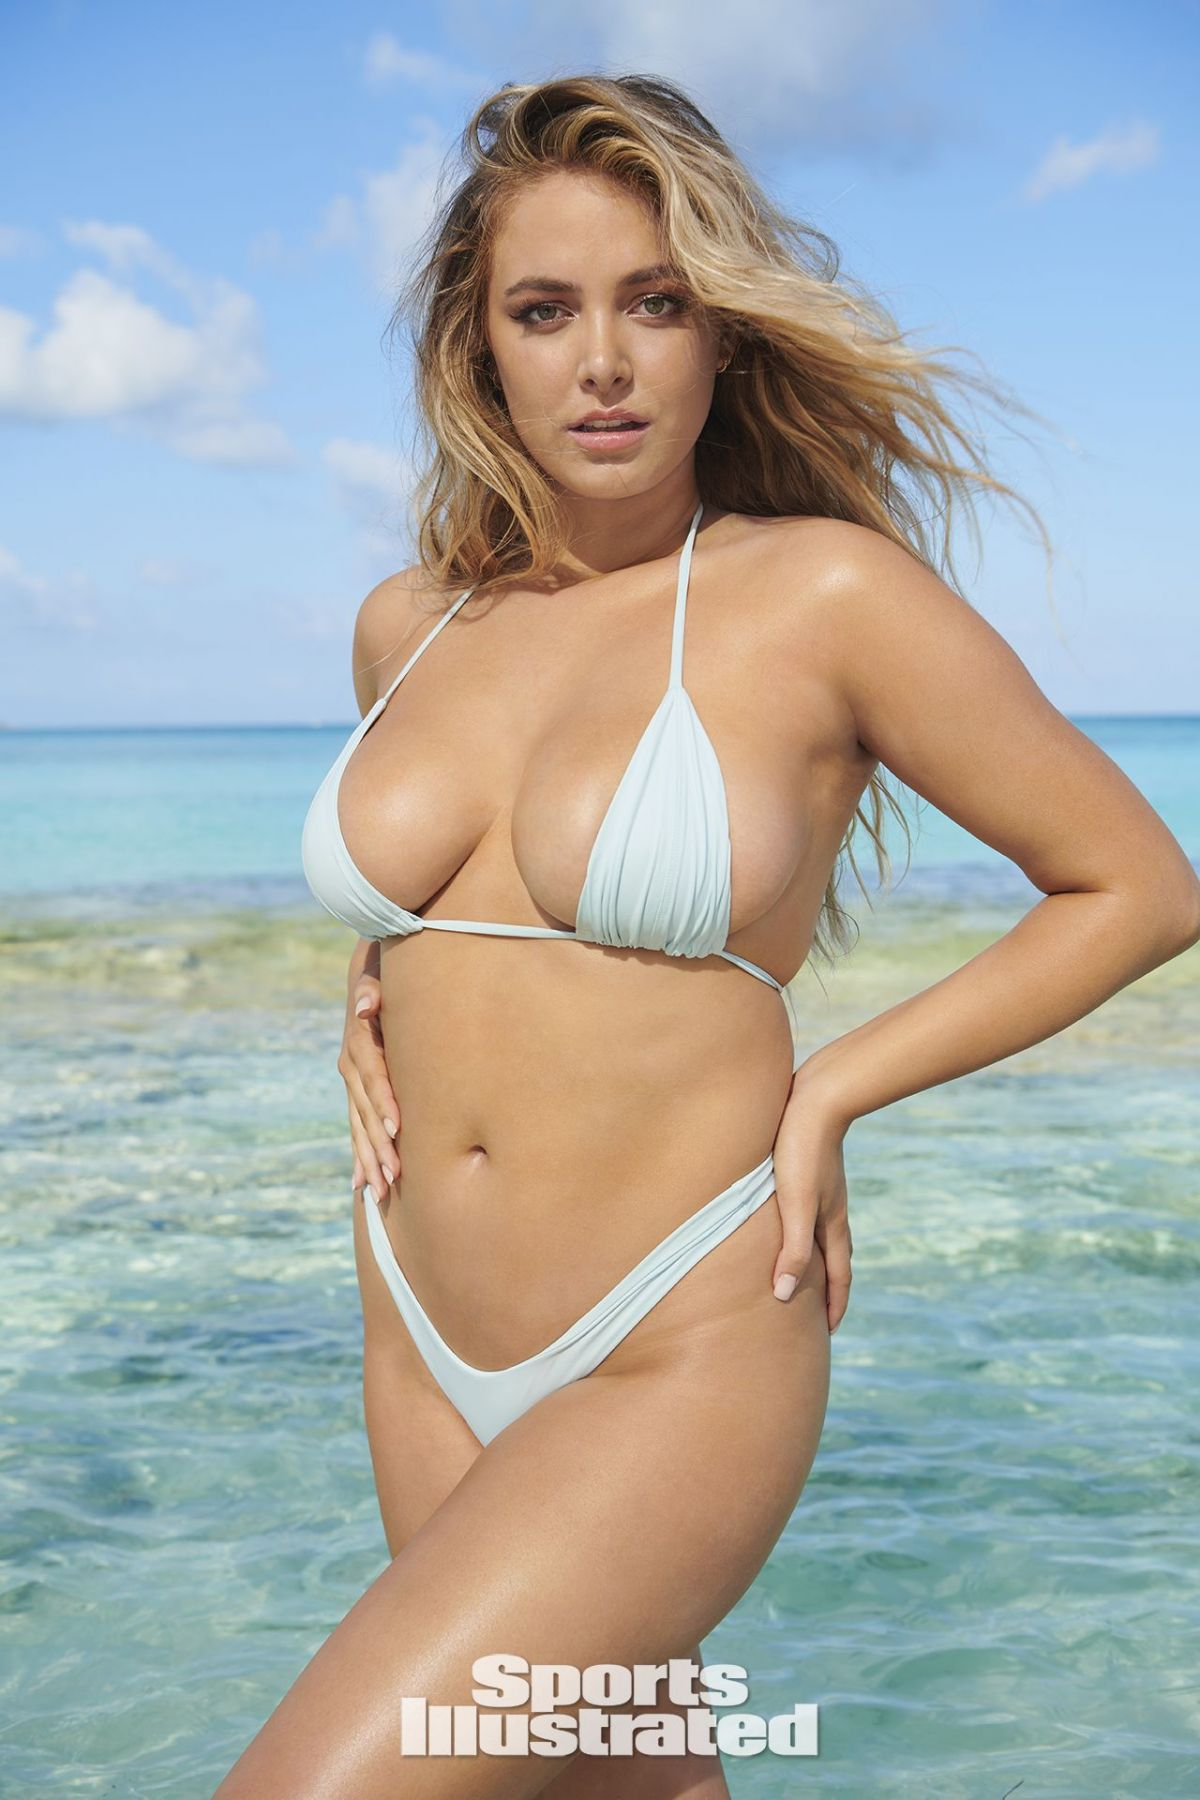 RAINE MICHAELS in Sports Illustrated Swimsuit 2019 Issue – HawtCelebs